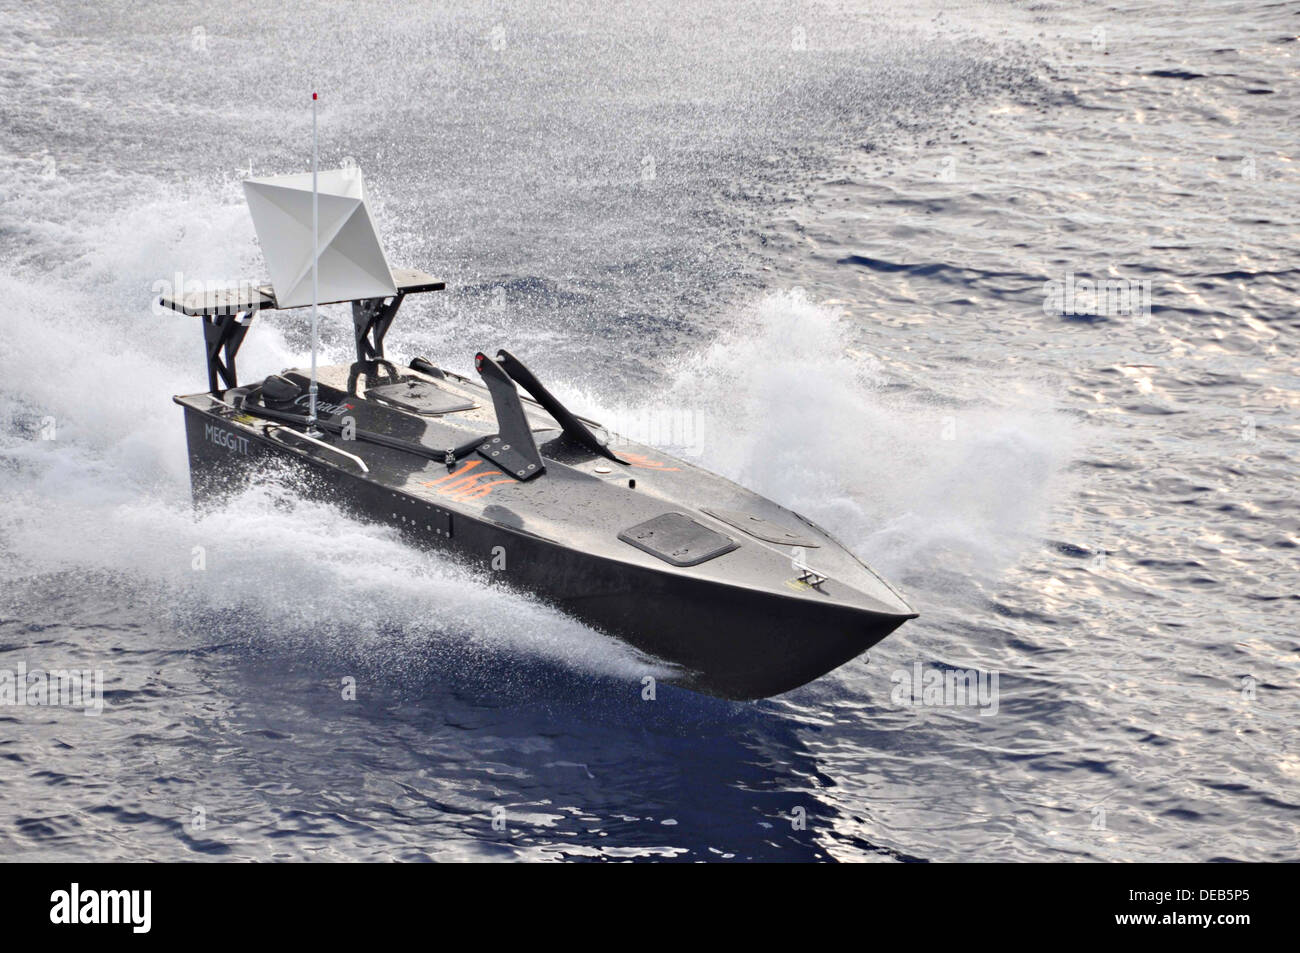 A Canadian Royal Navy Hammerhead unmanned remote controlled vehicle during a live-fire exercise September 10, 2013 in the Caribbean Sea. - Stock Image